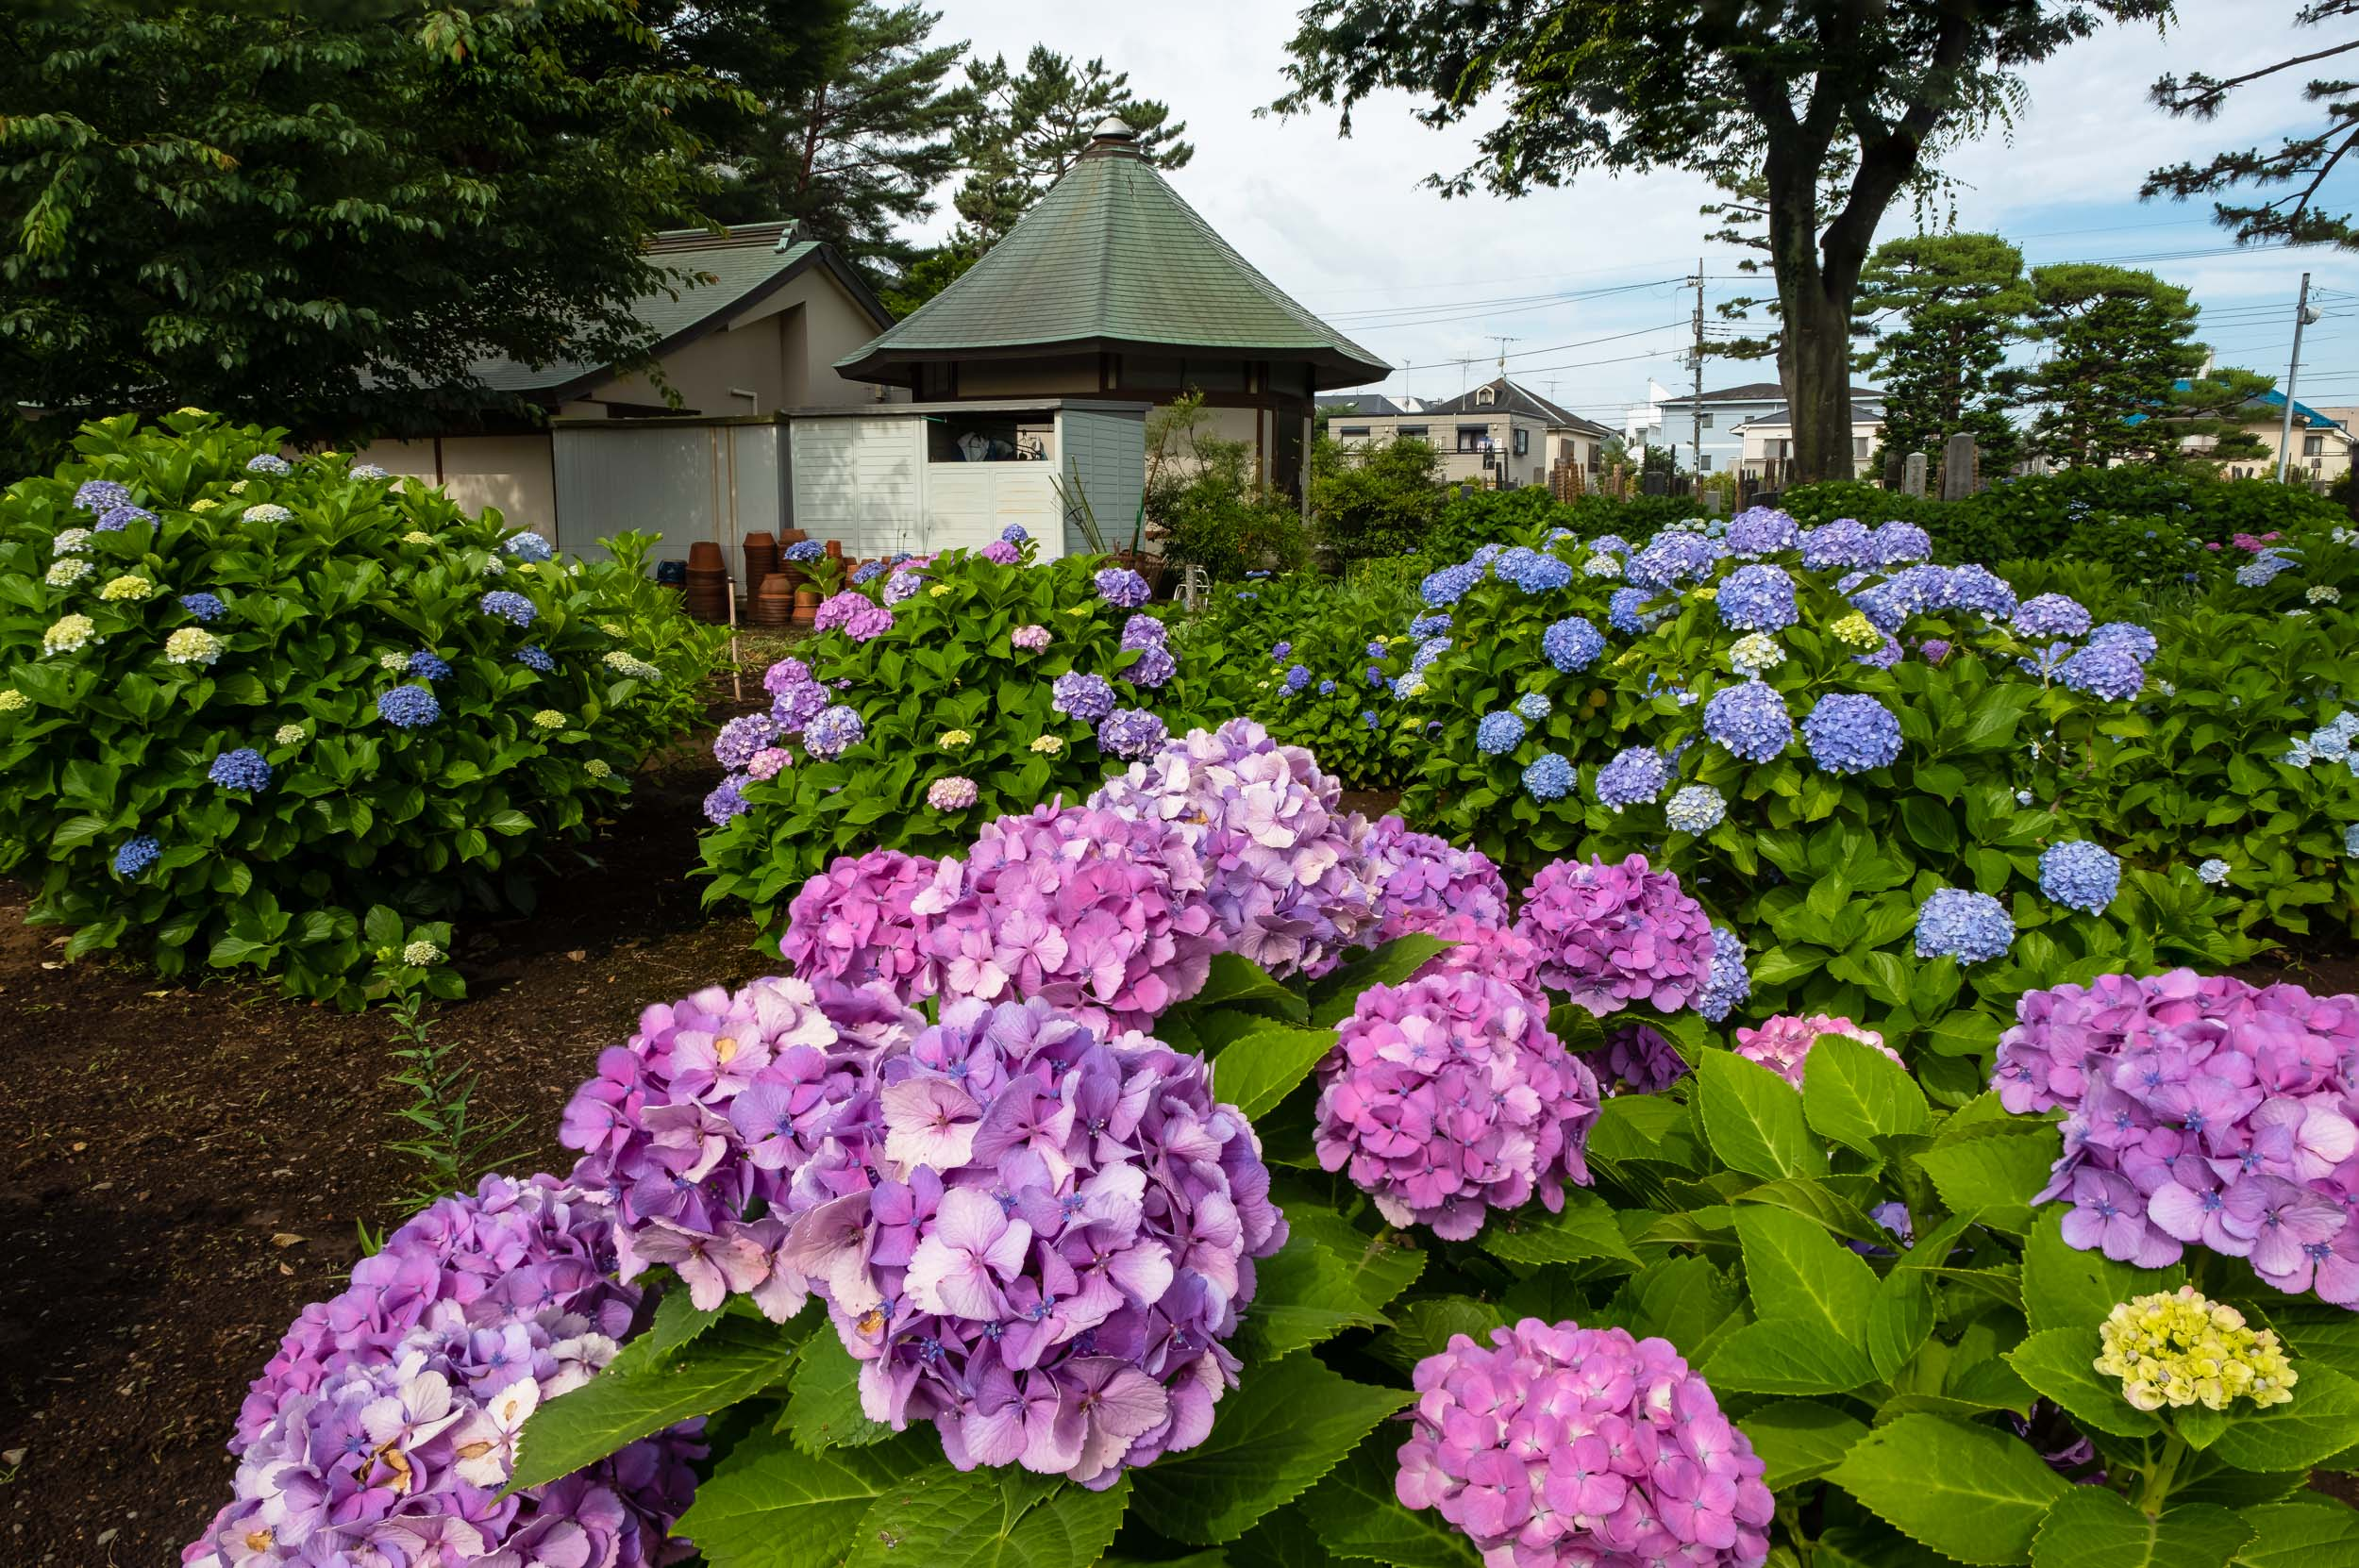 My first ever published shot using focus stac king  - a field of hydrangeas